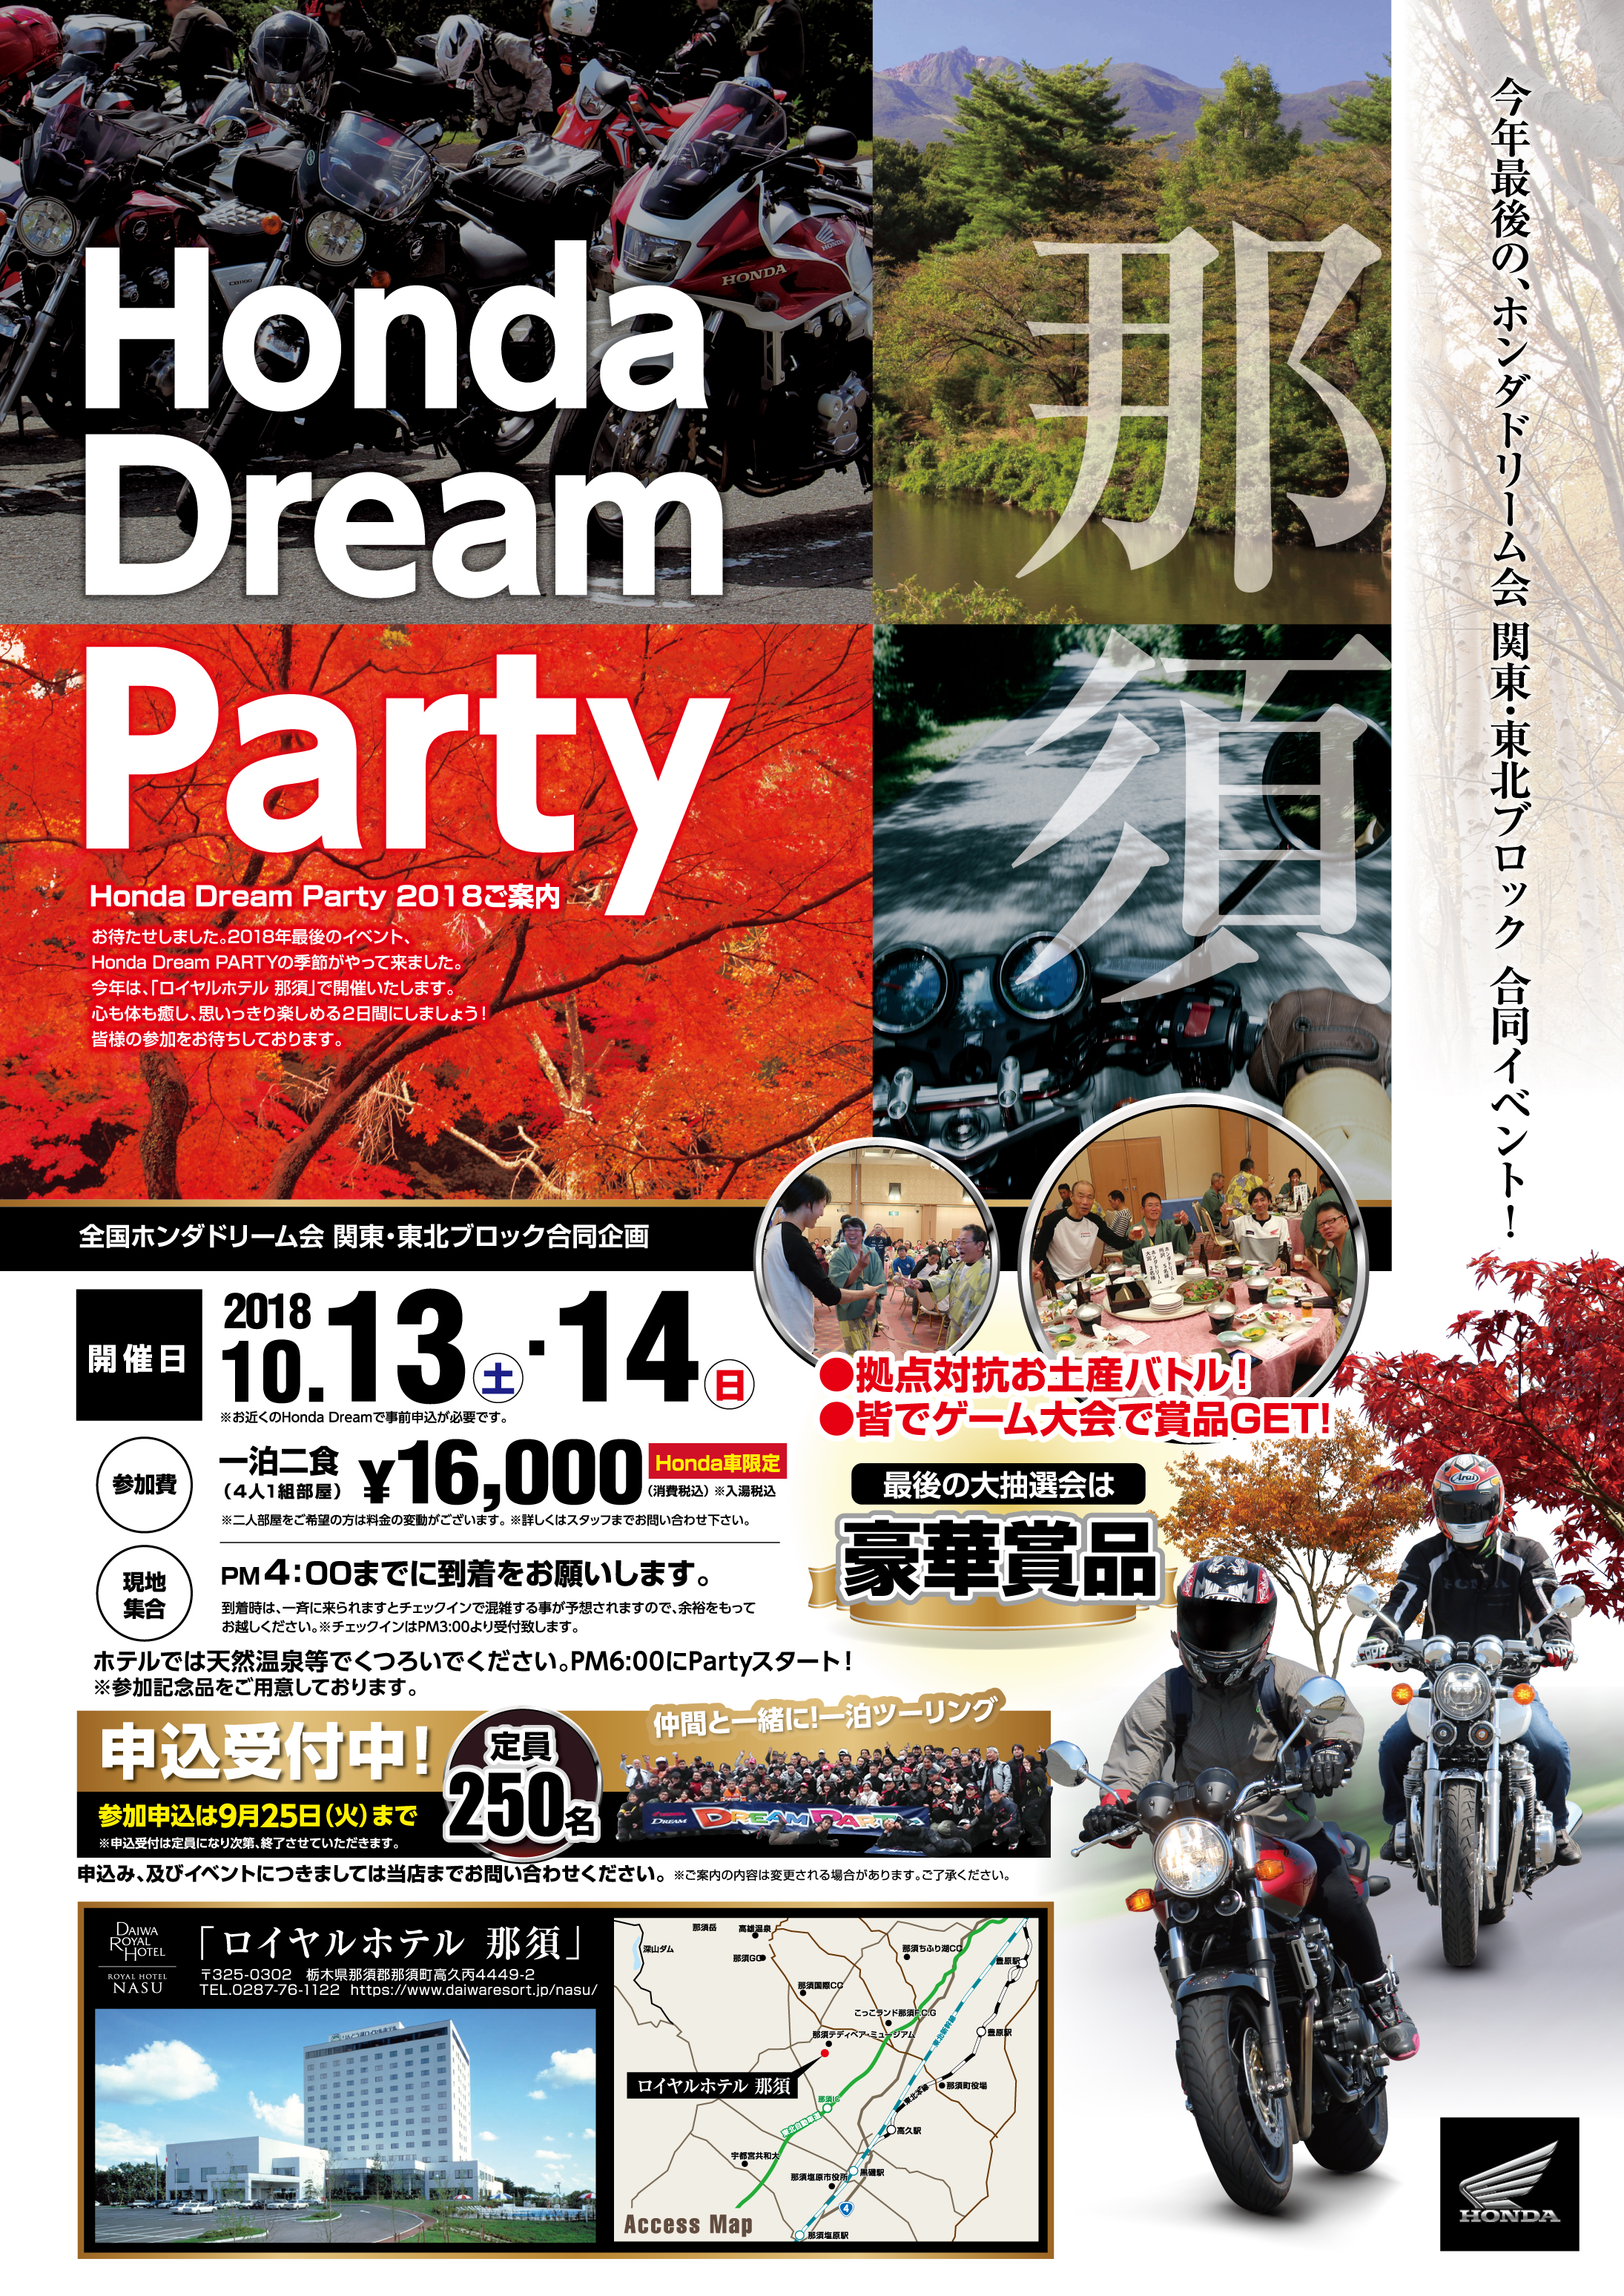 DREAM PARTY 2018 in 那須 参加者募集中です!